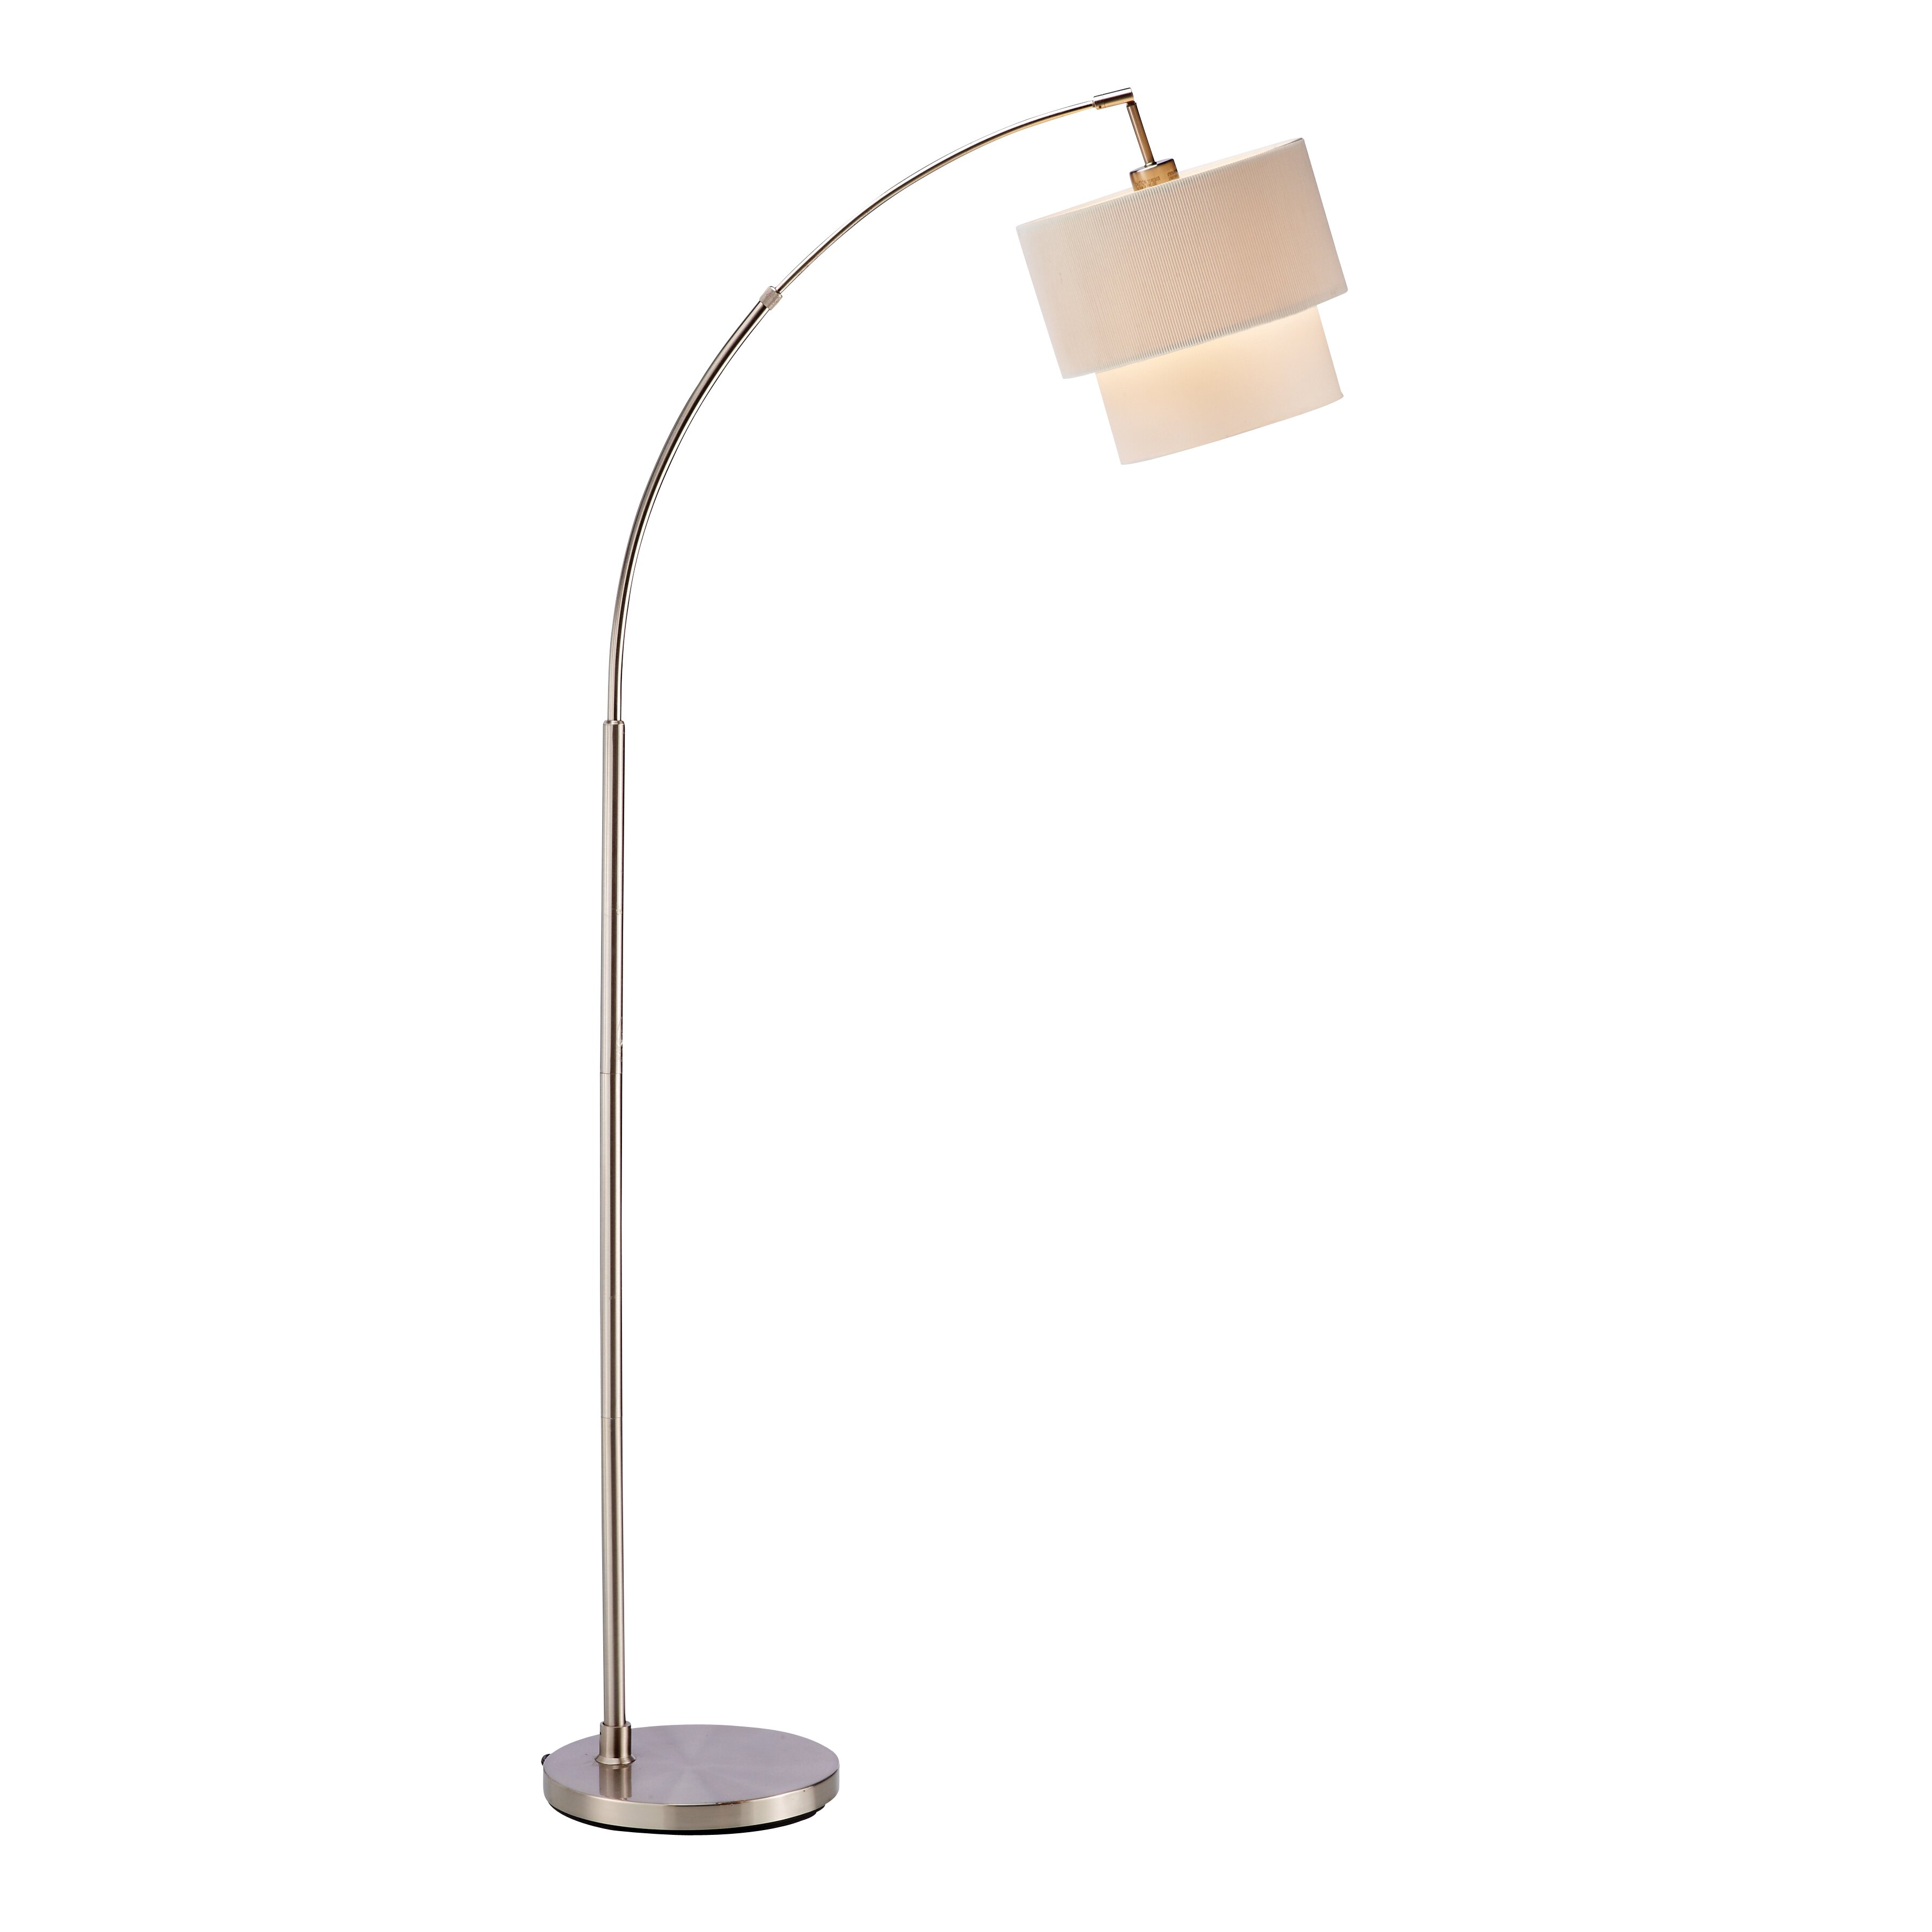 Langley street duneany 71 arched floor lamp reviews for Arch floor lamps for living room